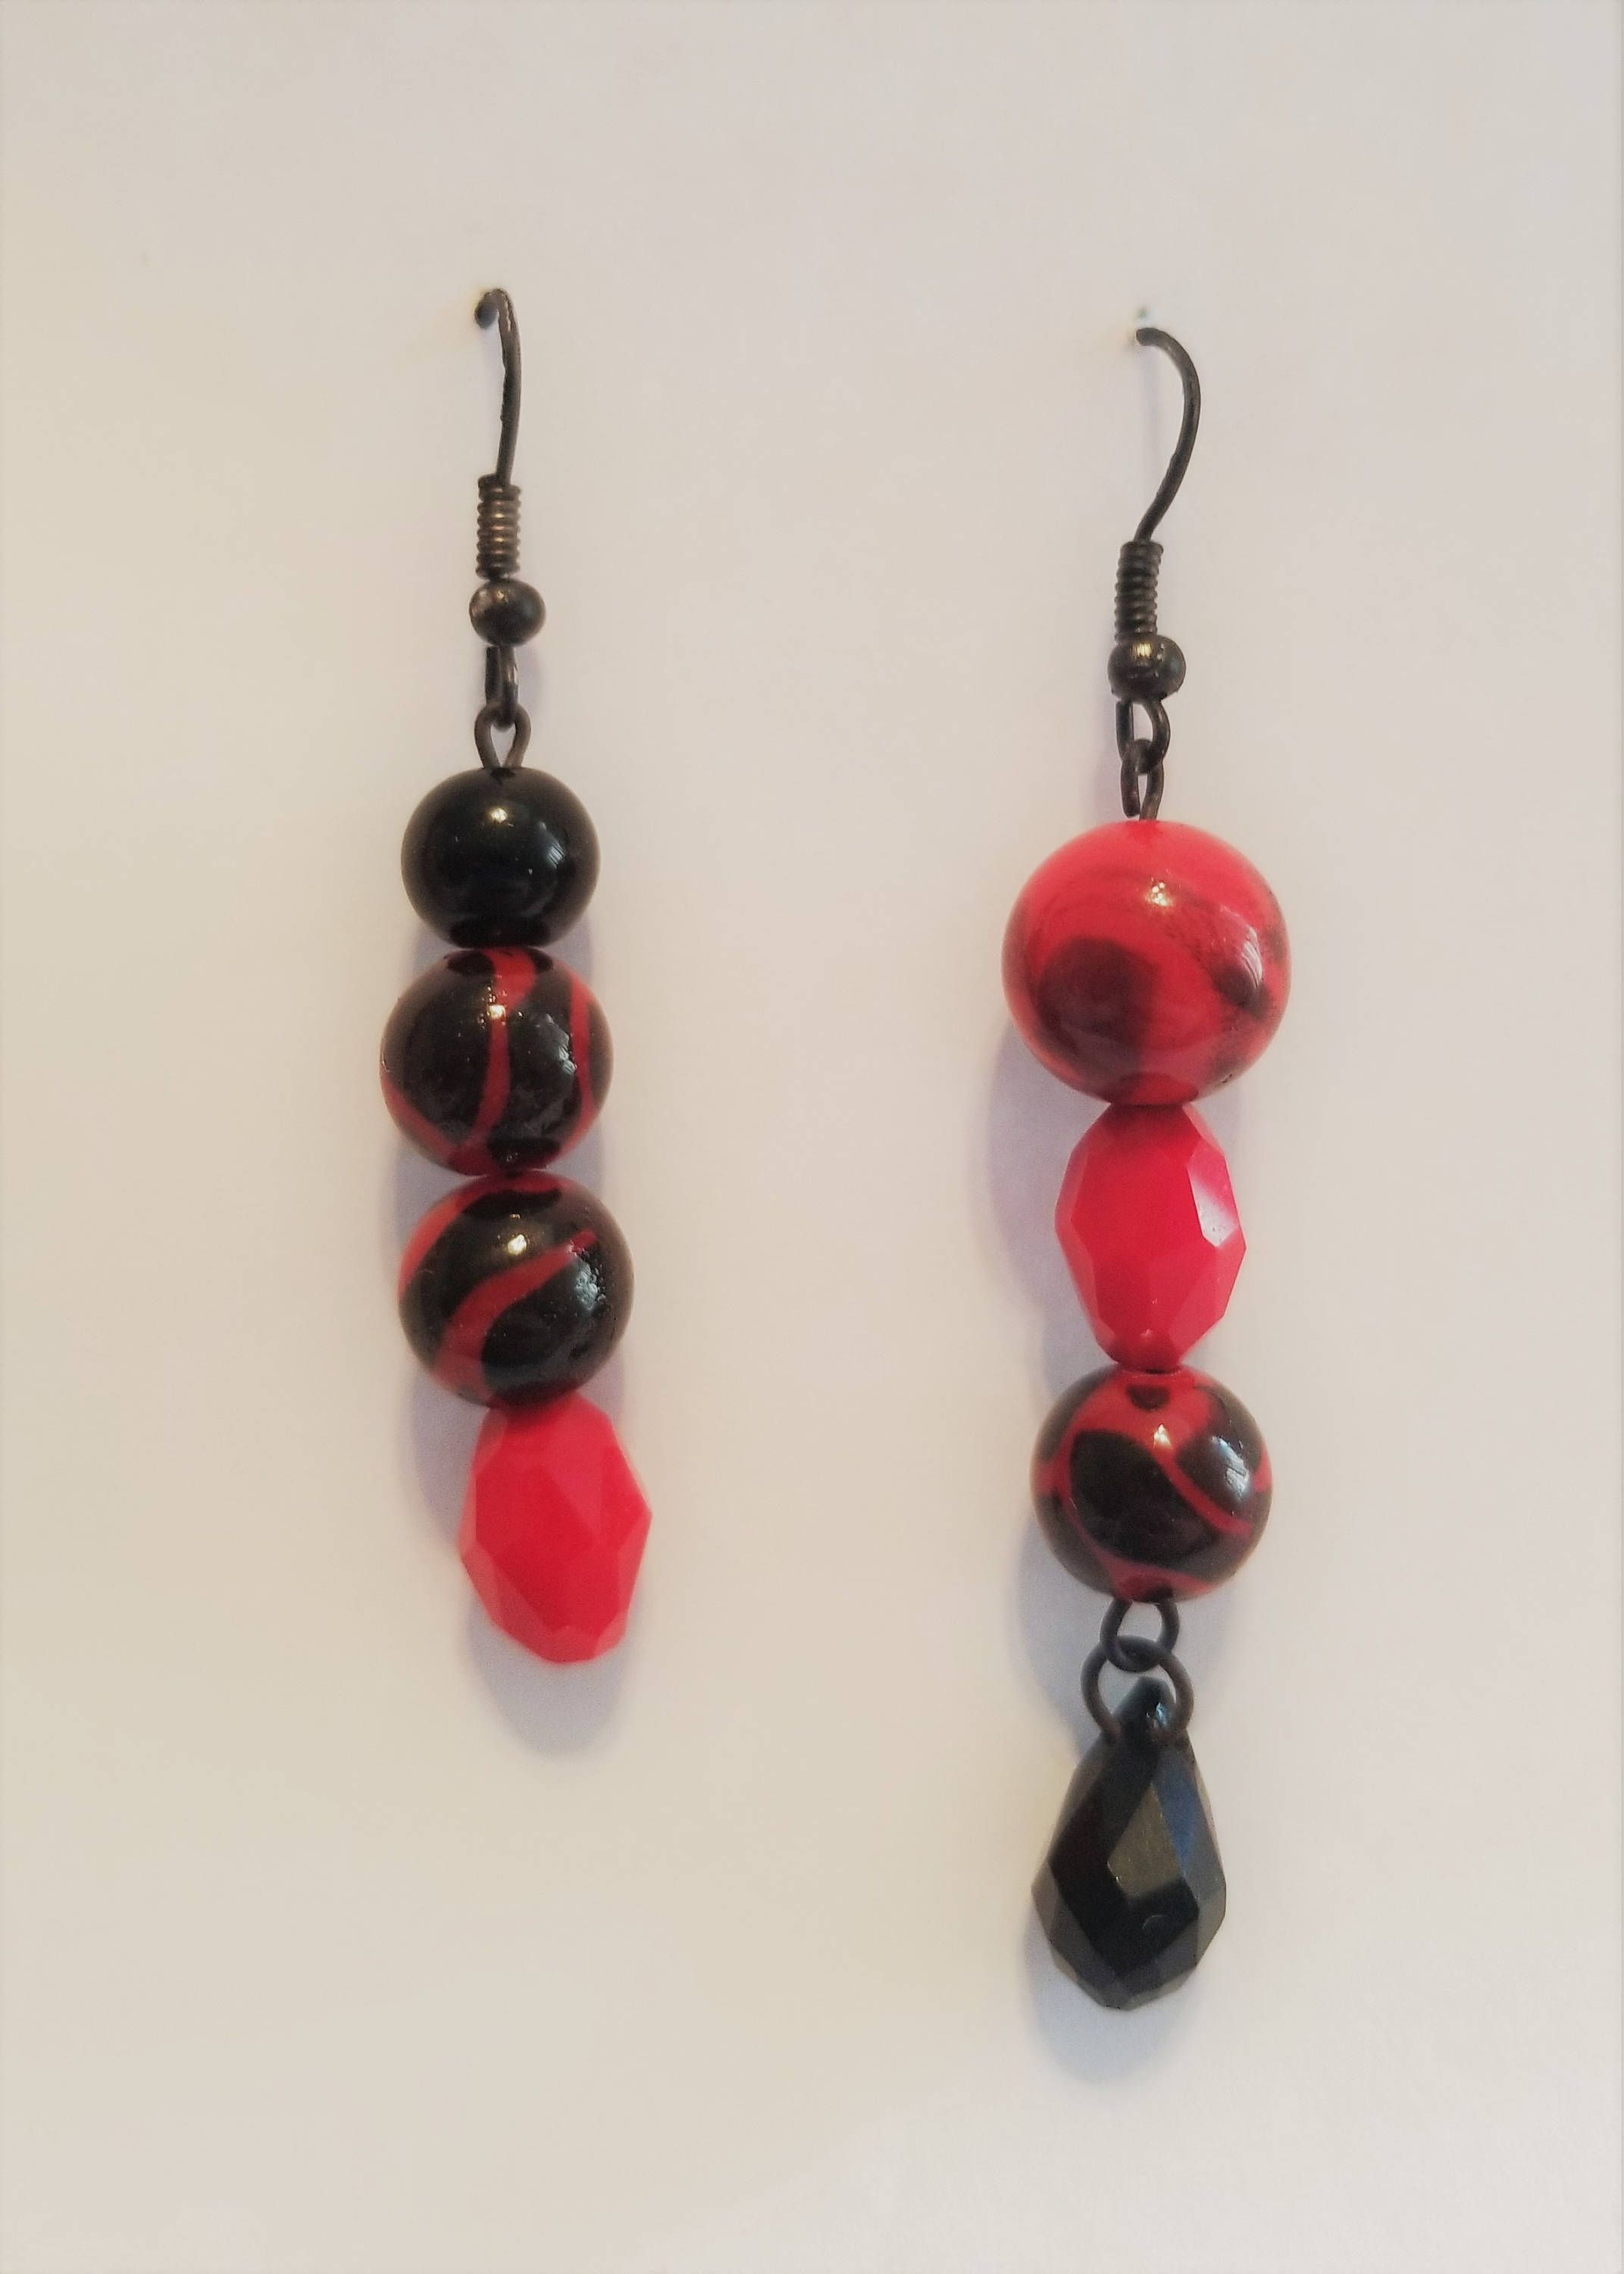 sr mismatched earring earrings